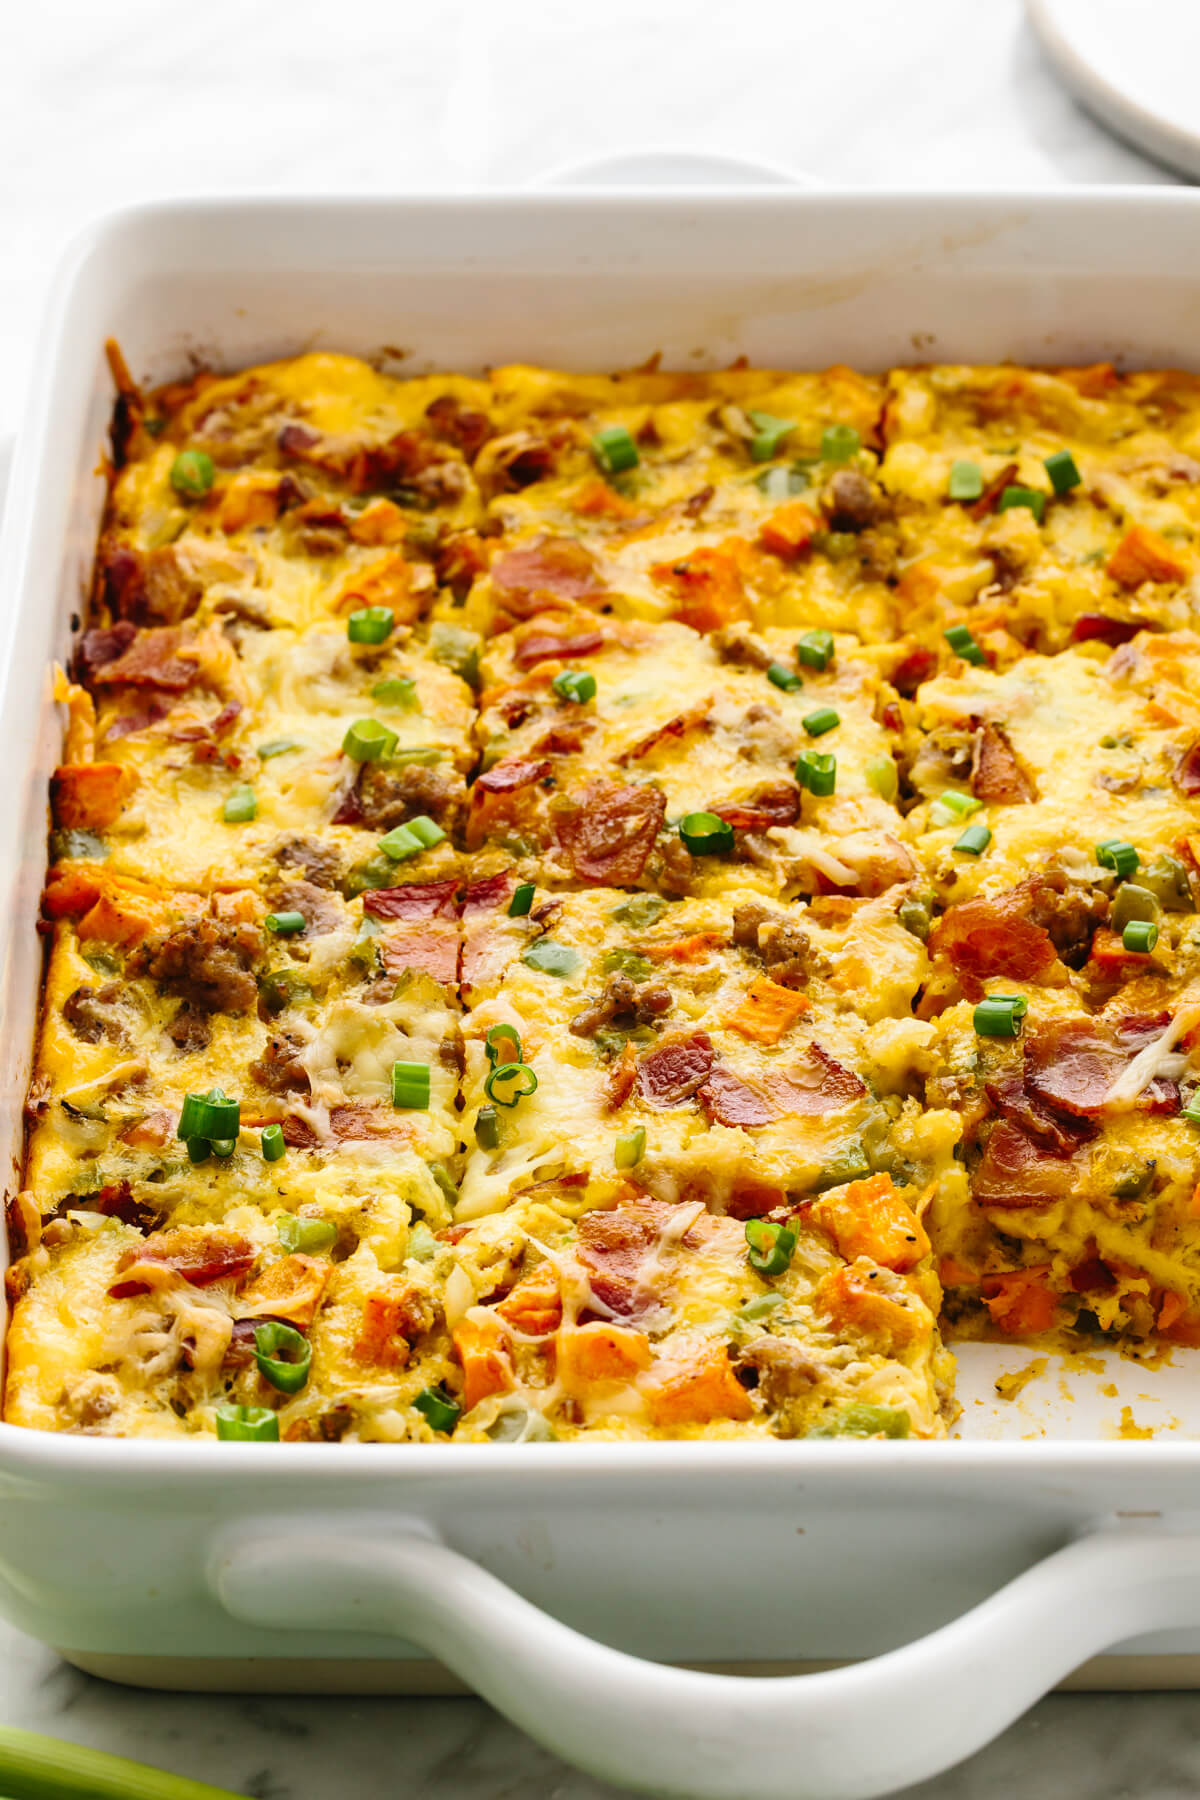 Breakfast casserole in a pan, sliced into pieces.